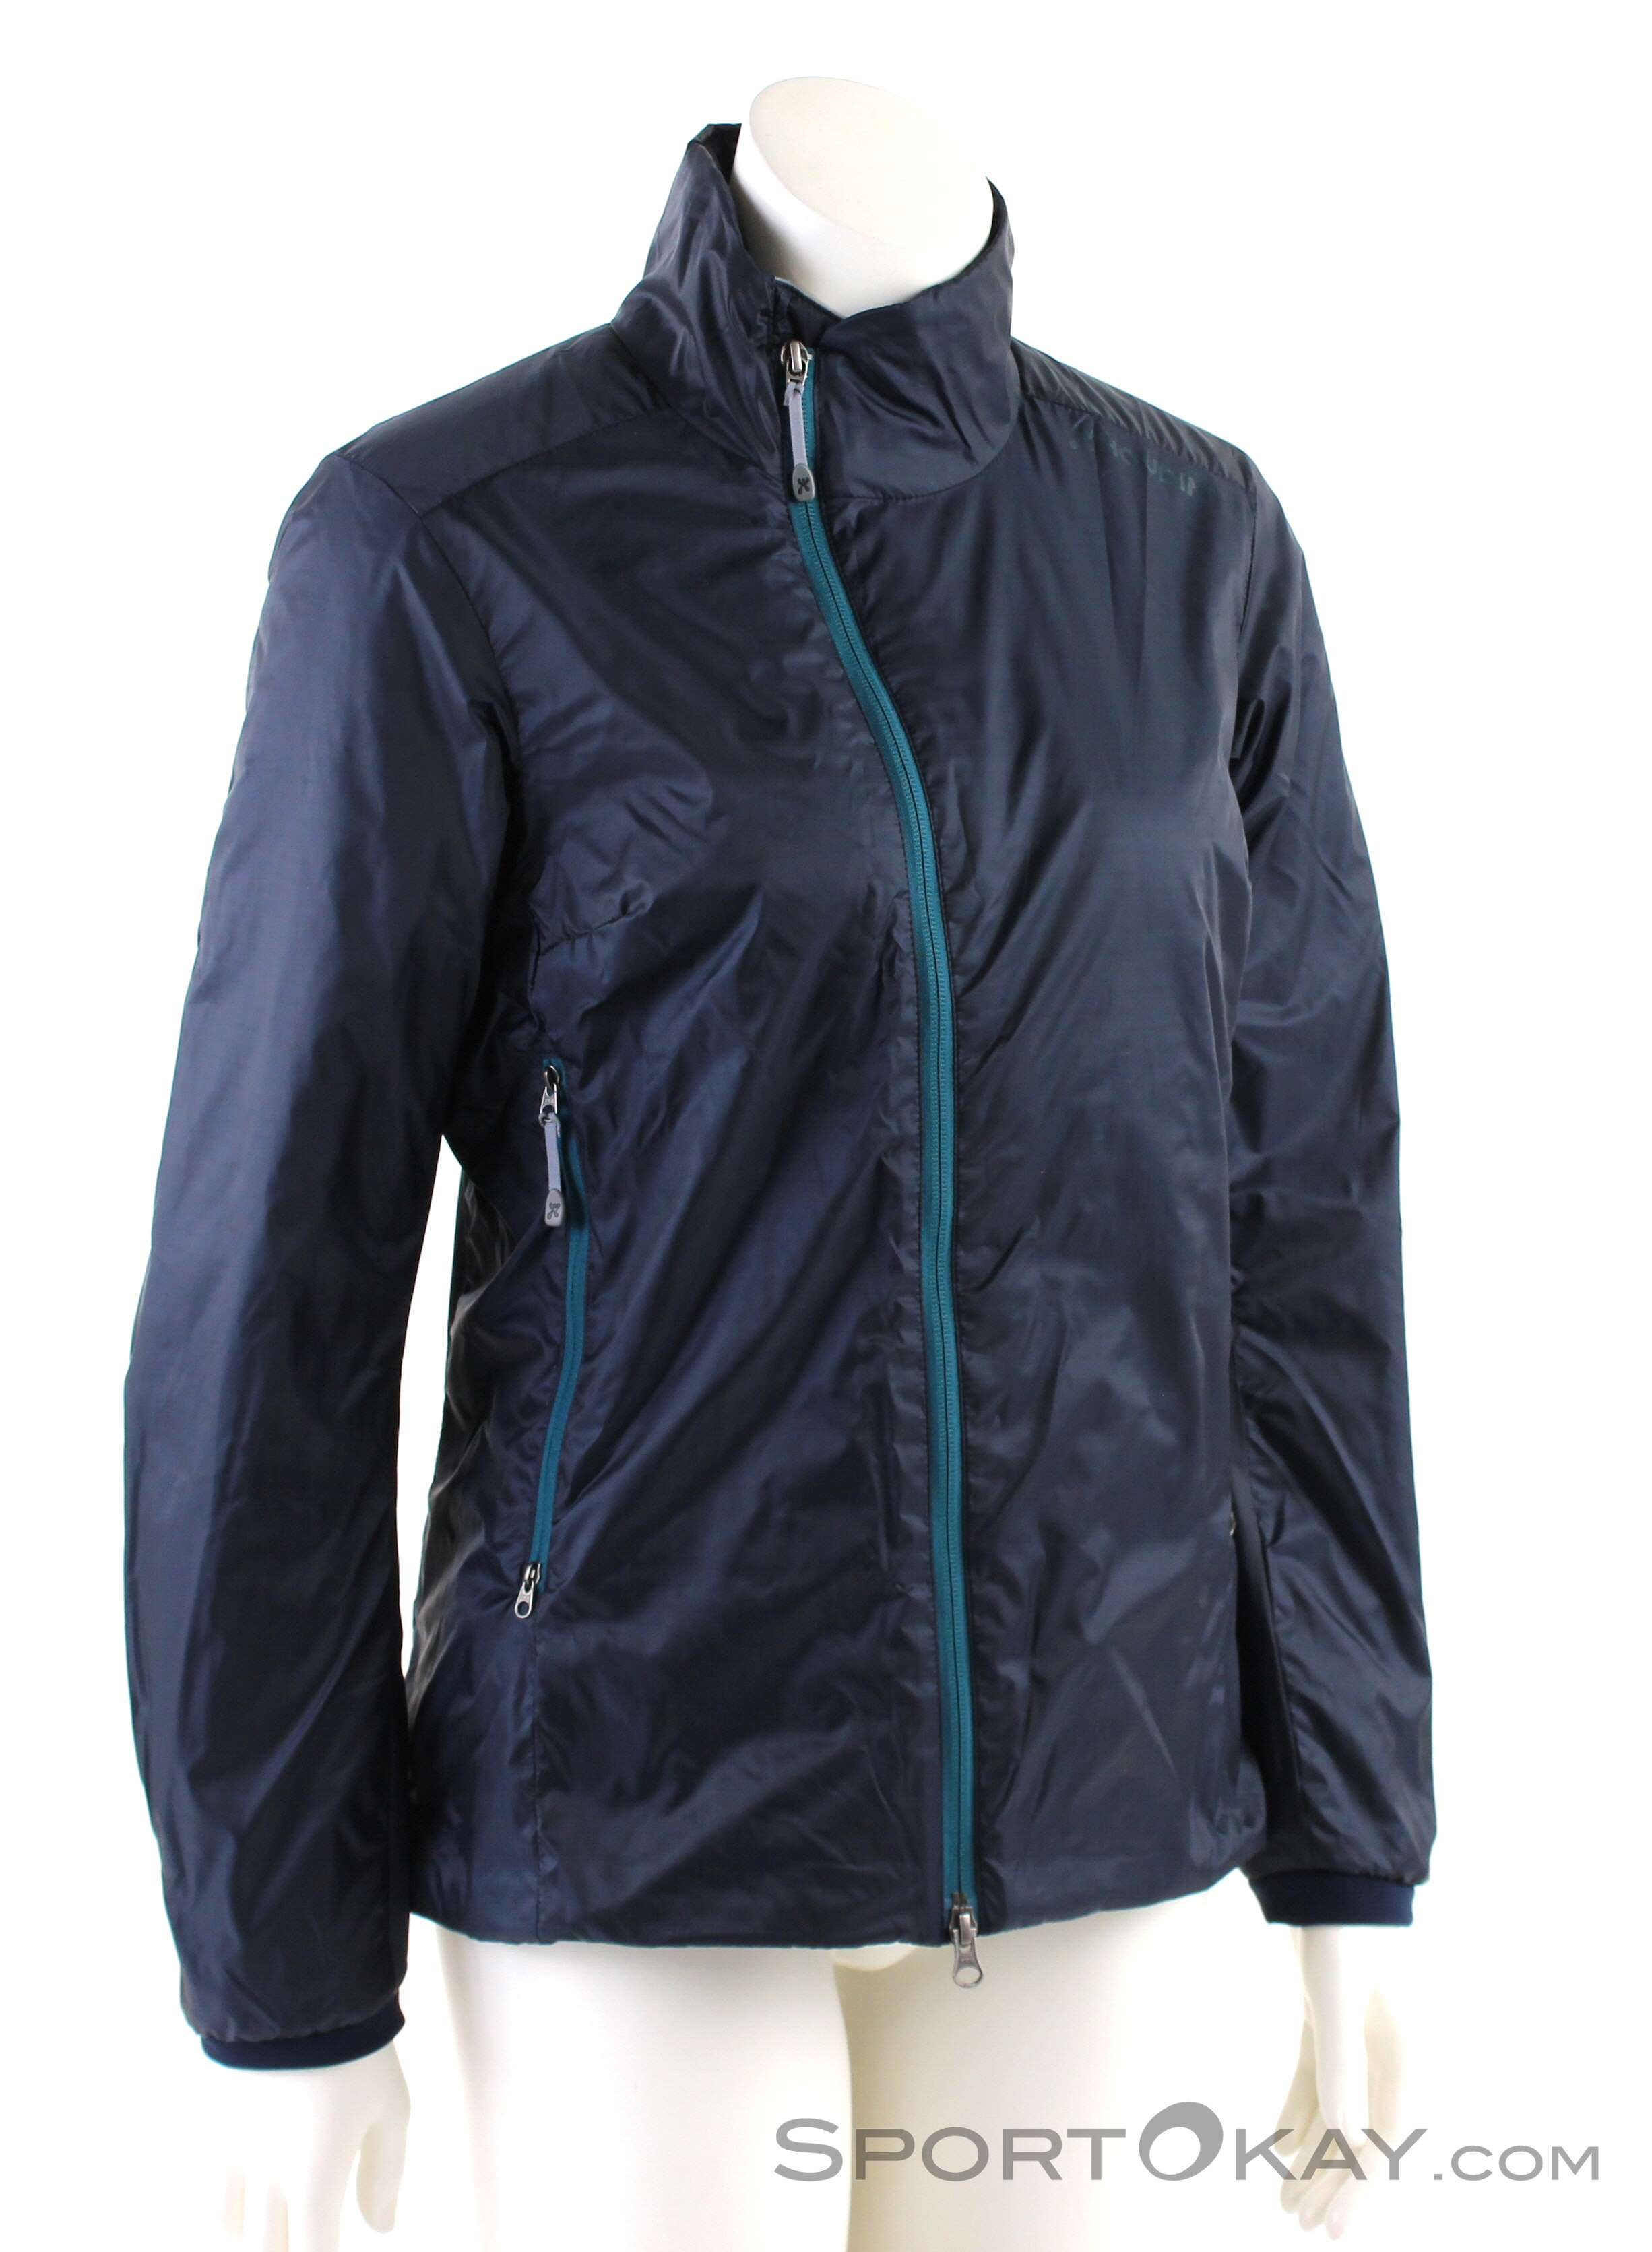 Houdini Fly Jacket Damen Outdoorjacke-Blau-S